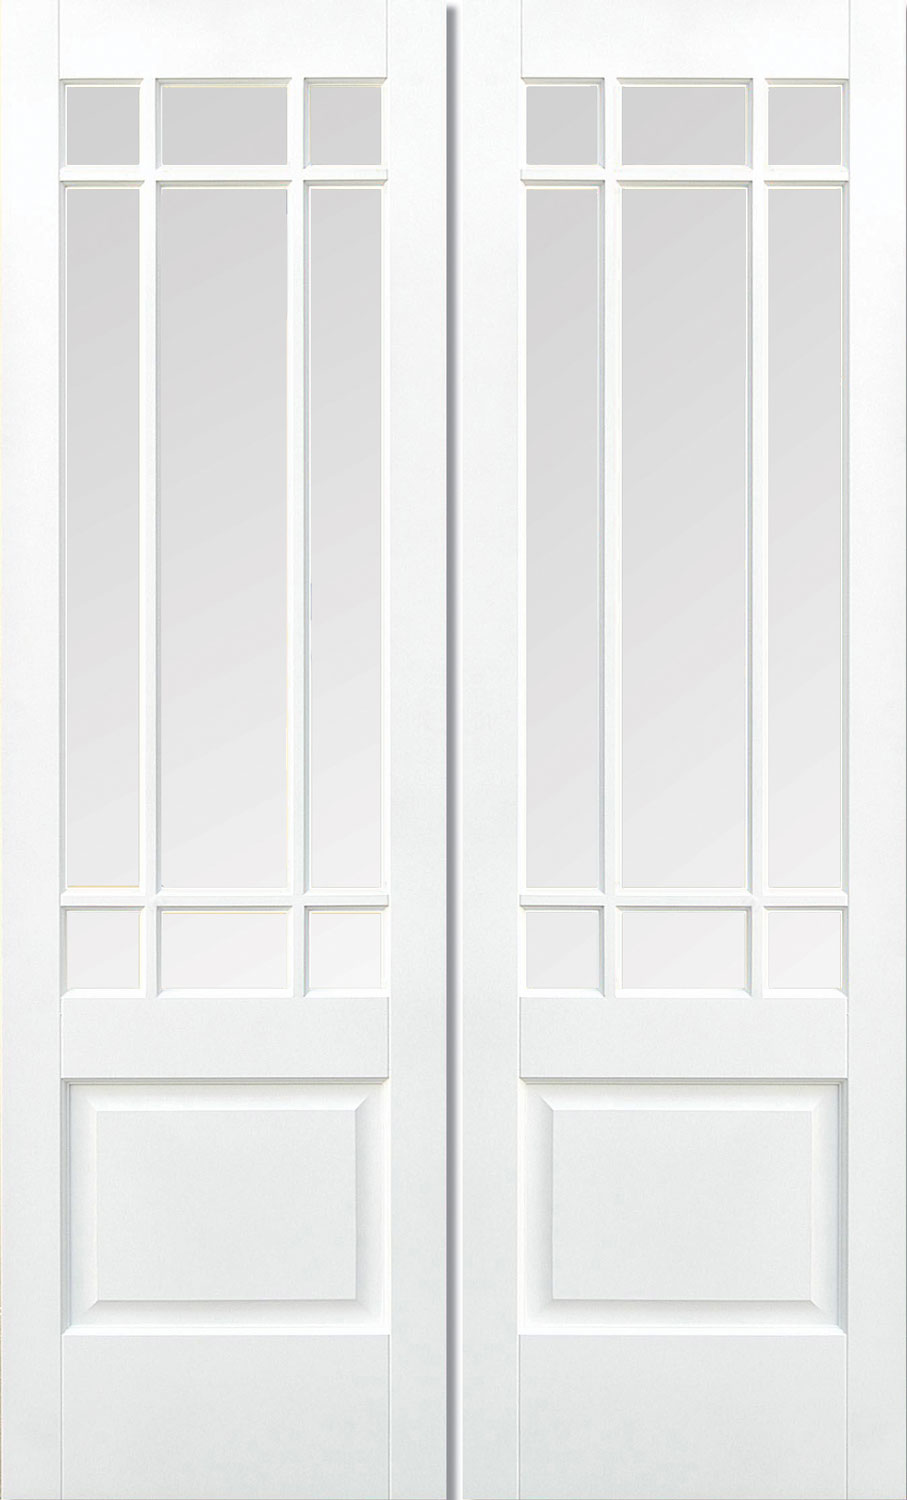 Downham White Interior Door Pair